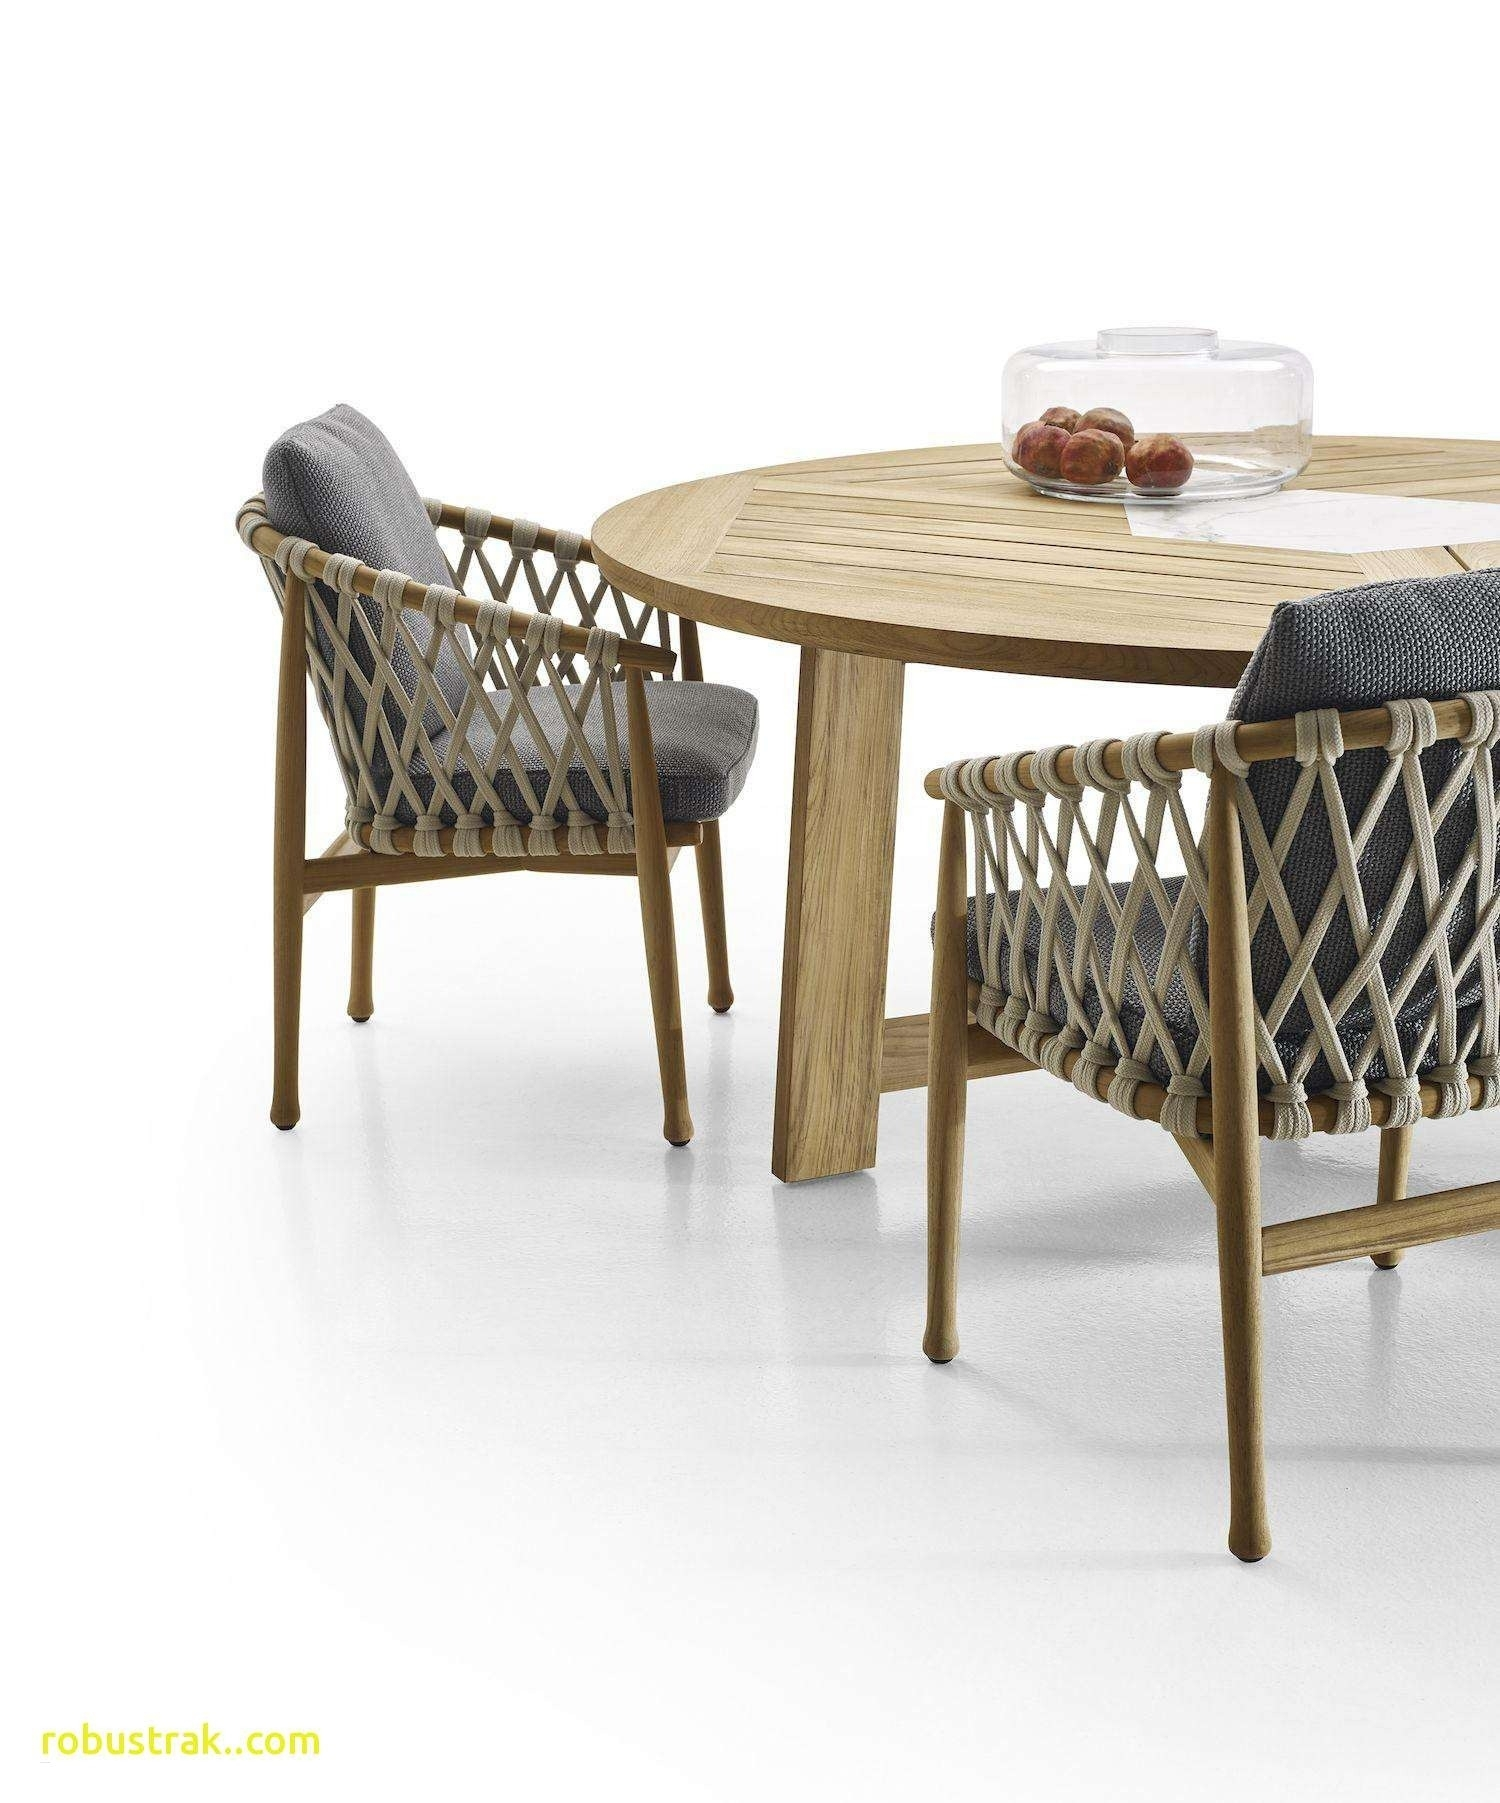 The 21 New Pedestals For Dining Tables – Welovedandelion Intended For Current Caira Extension Pedestal Dining Tables (Photo 6 of 20)